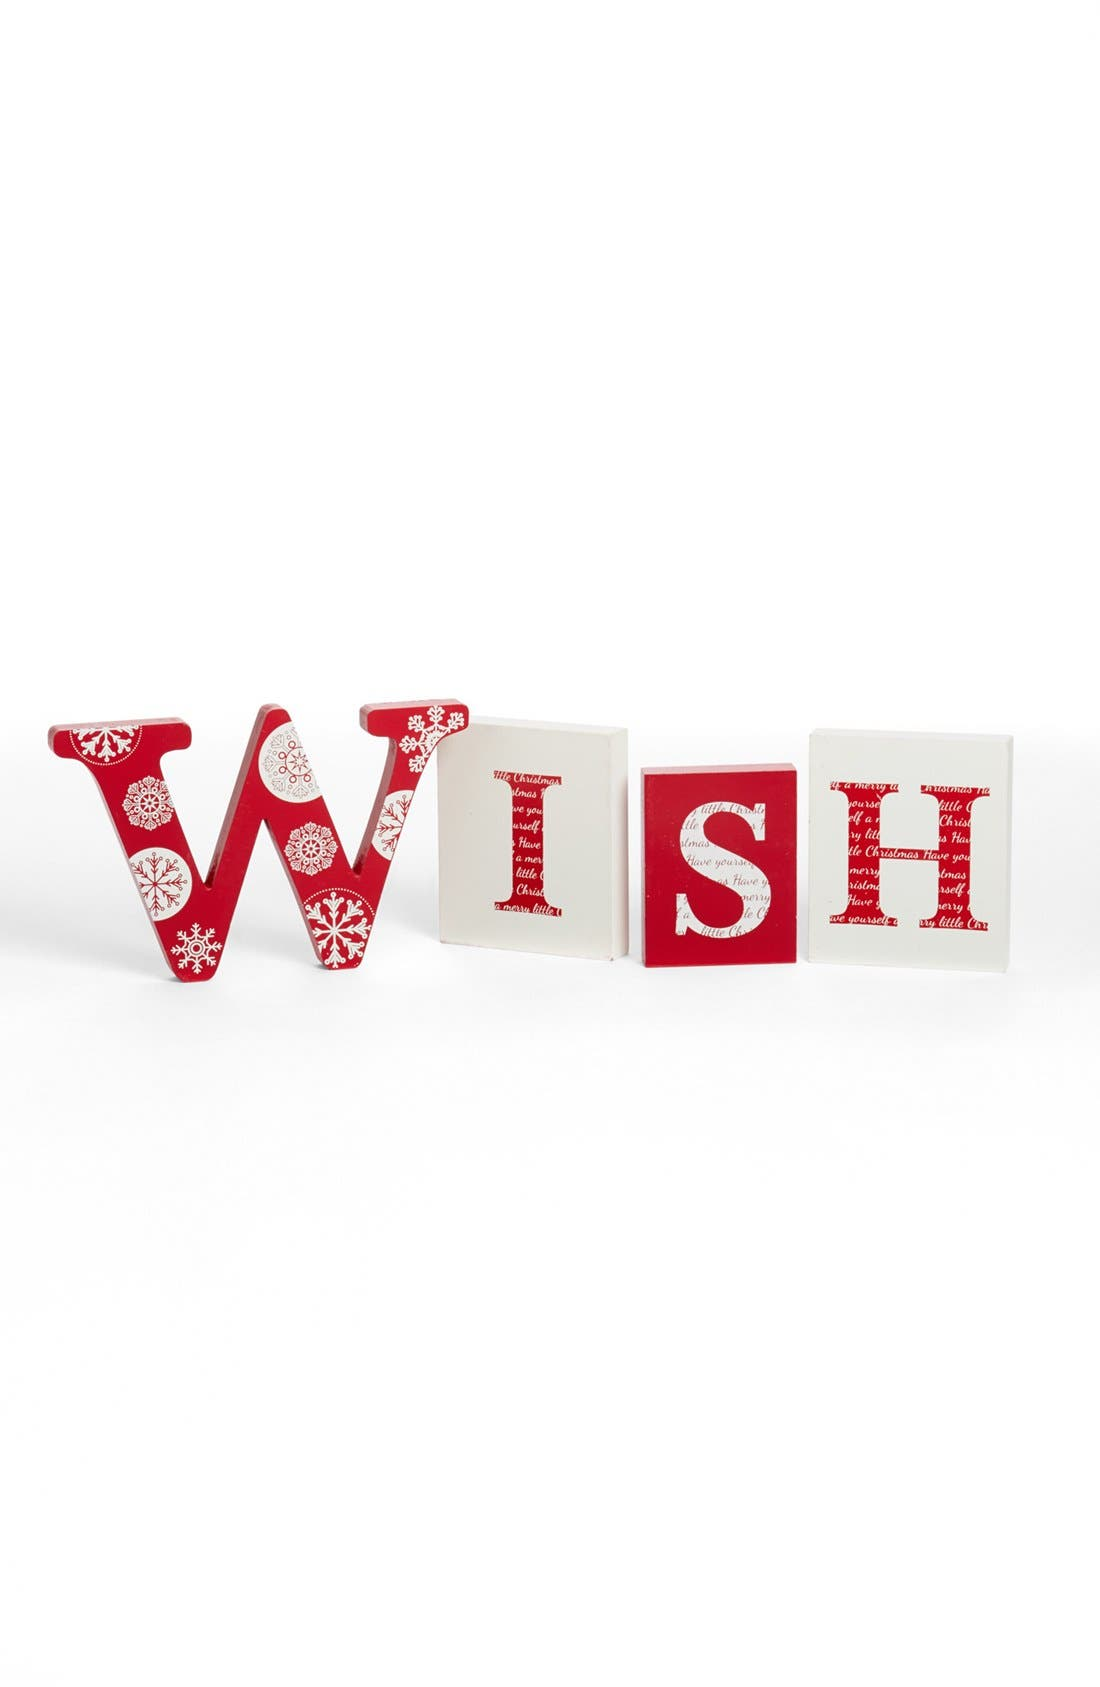 Main Image - K & K Interiors 'Wish' Wood Blocks